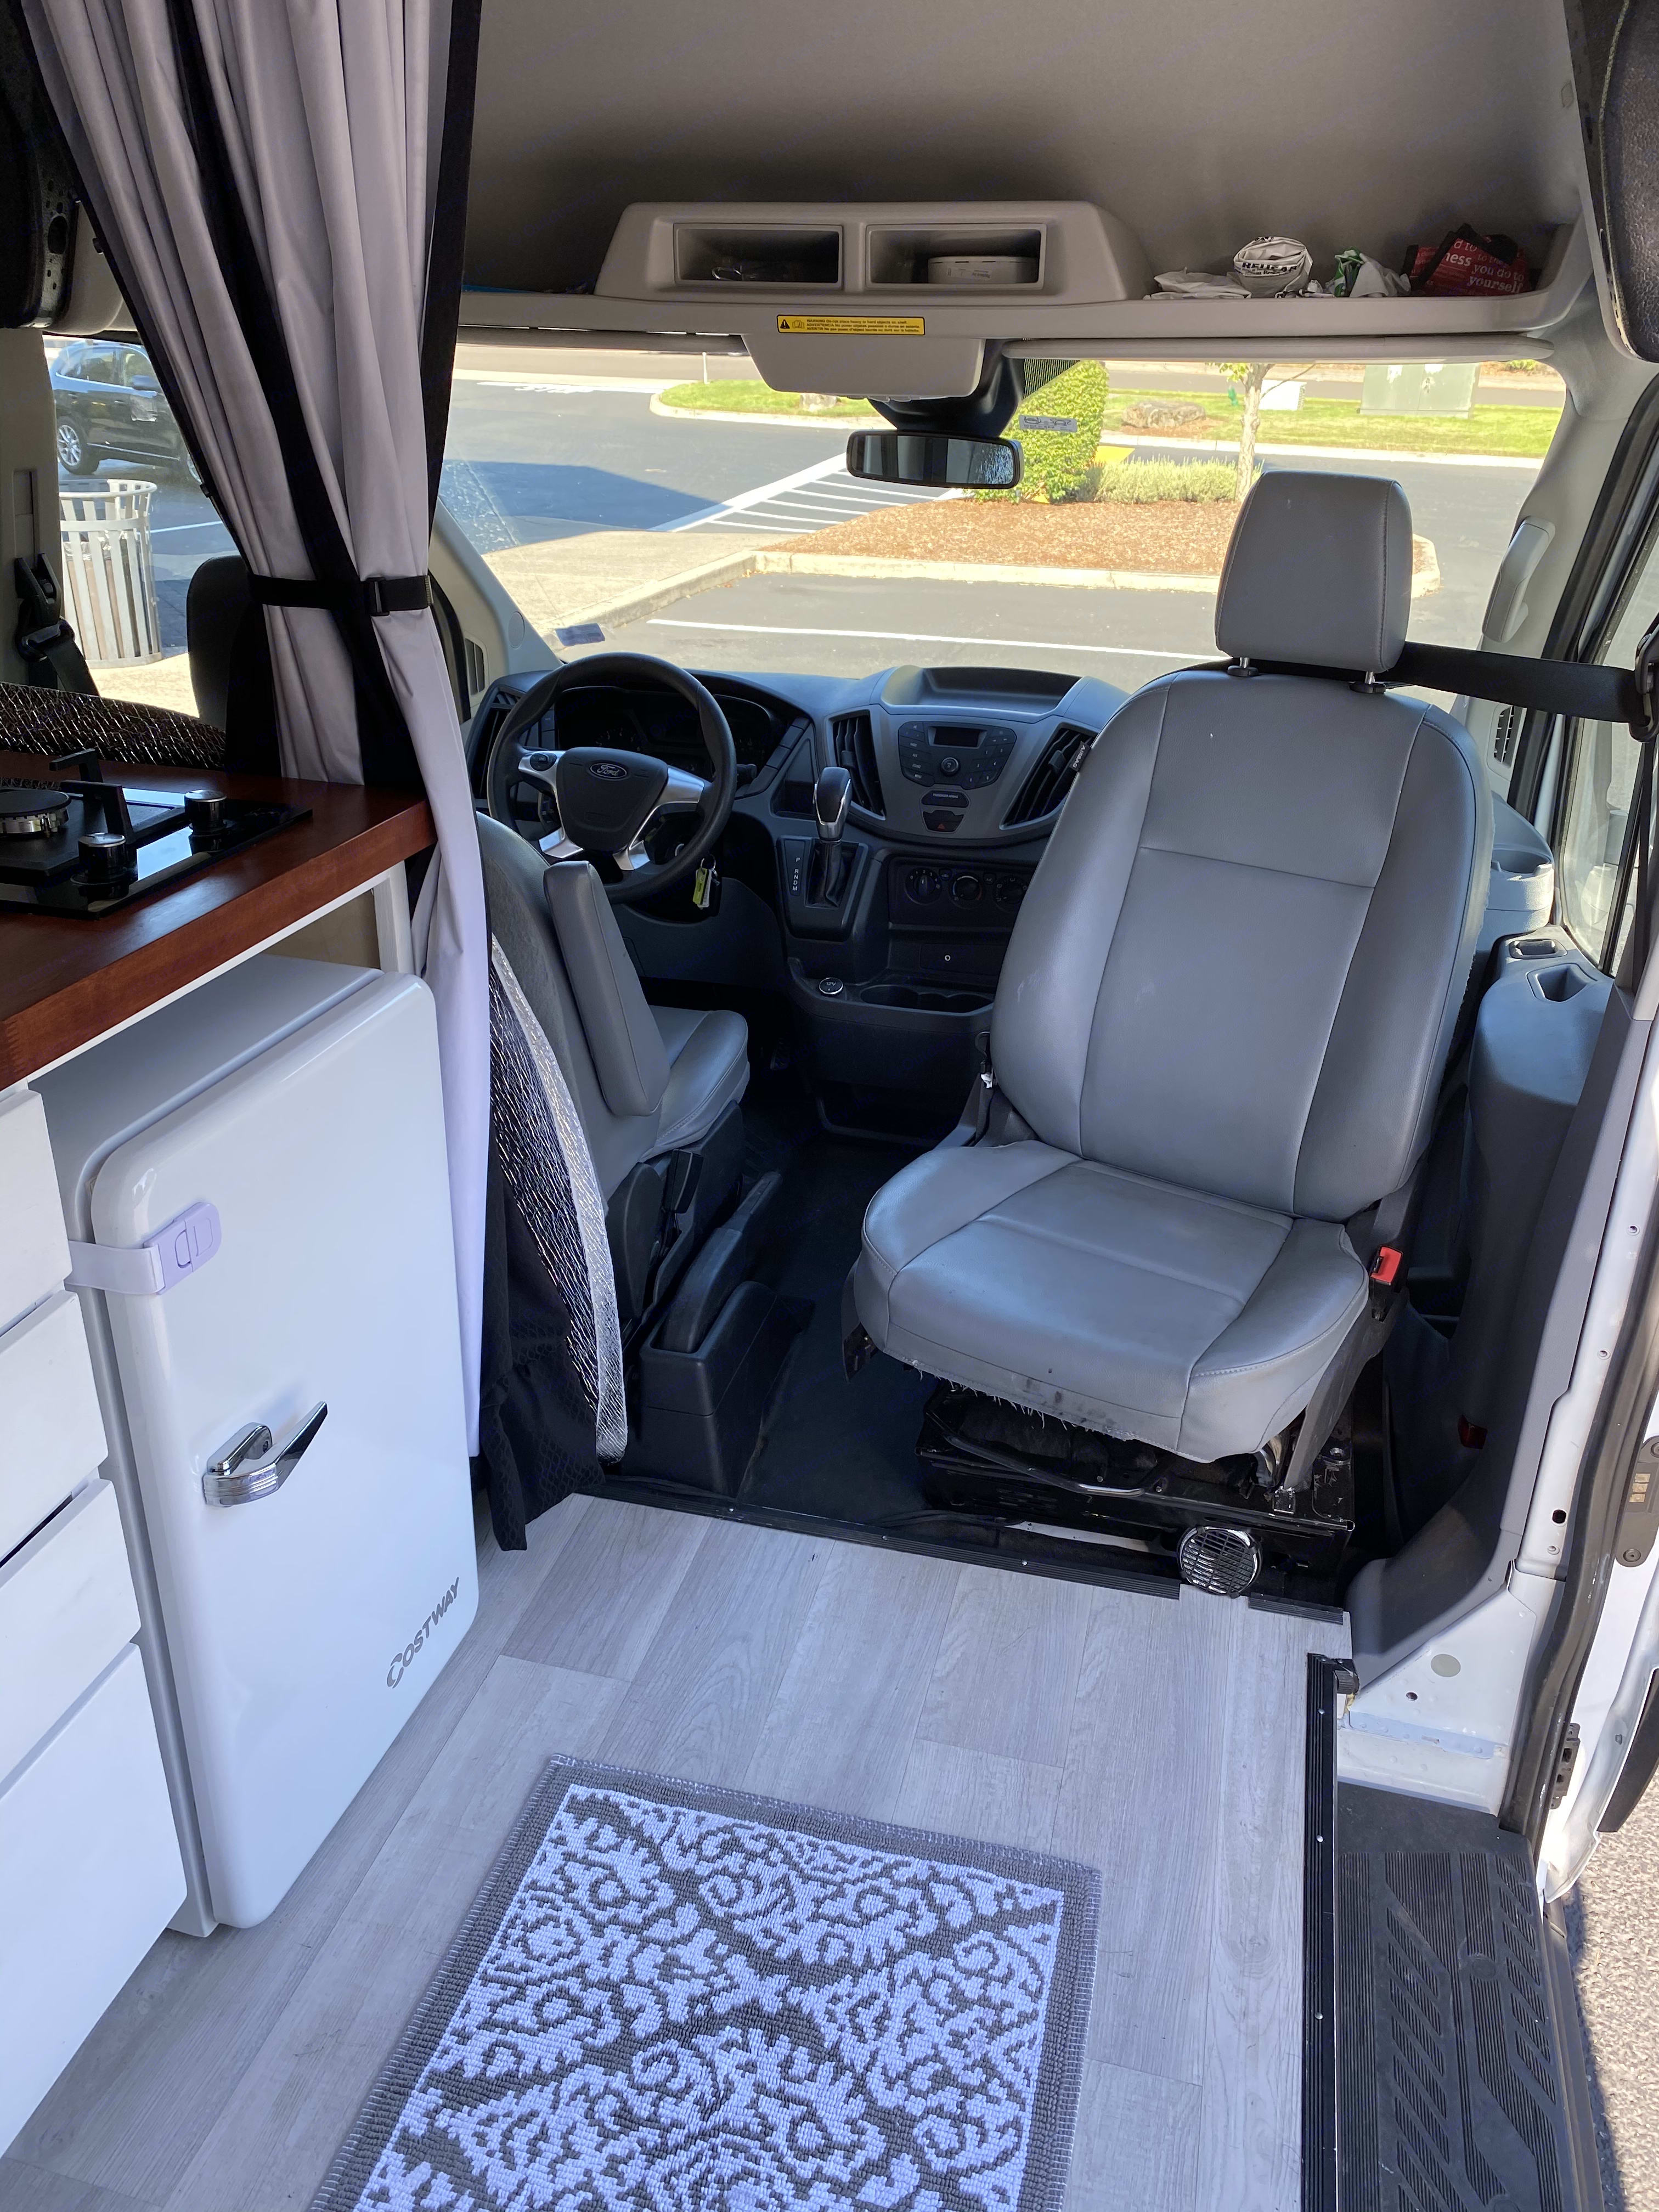 Swivel chair to make more living space!. Ford Transit 2019